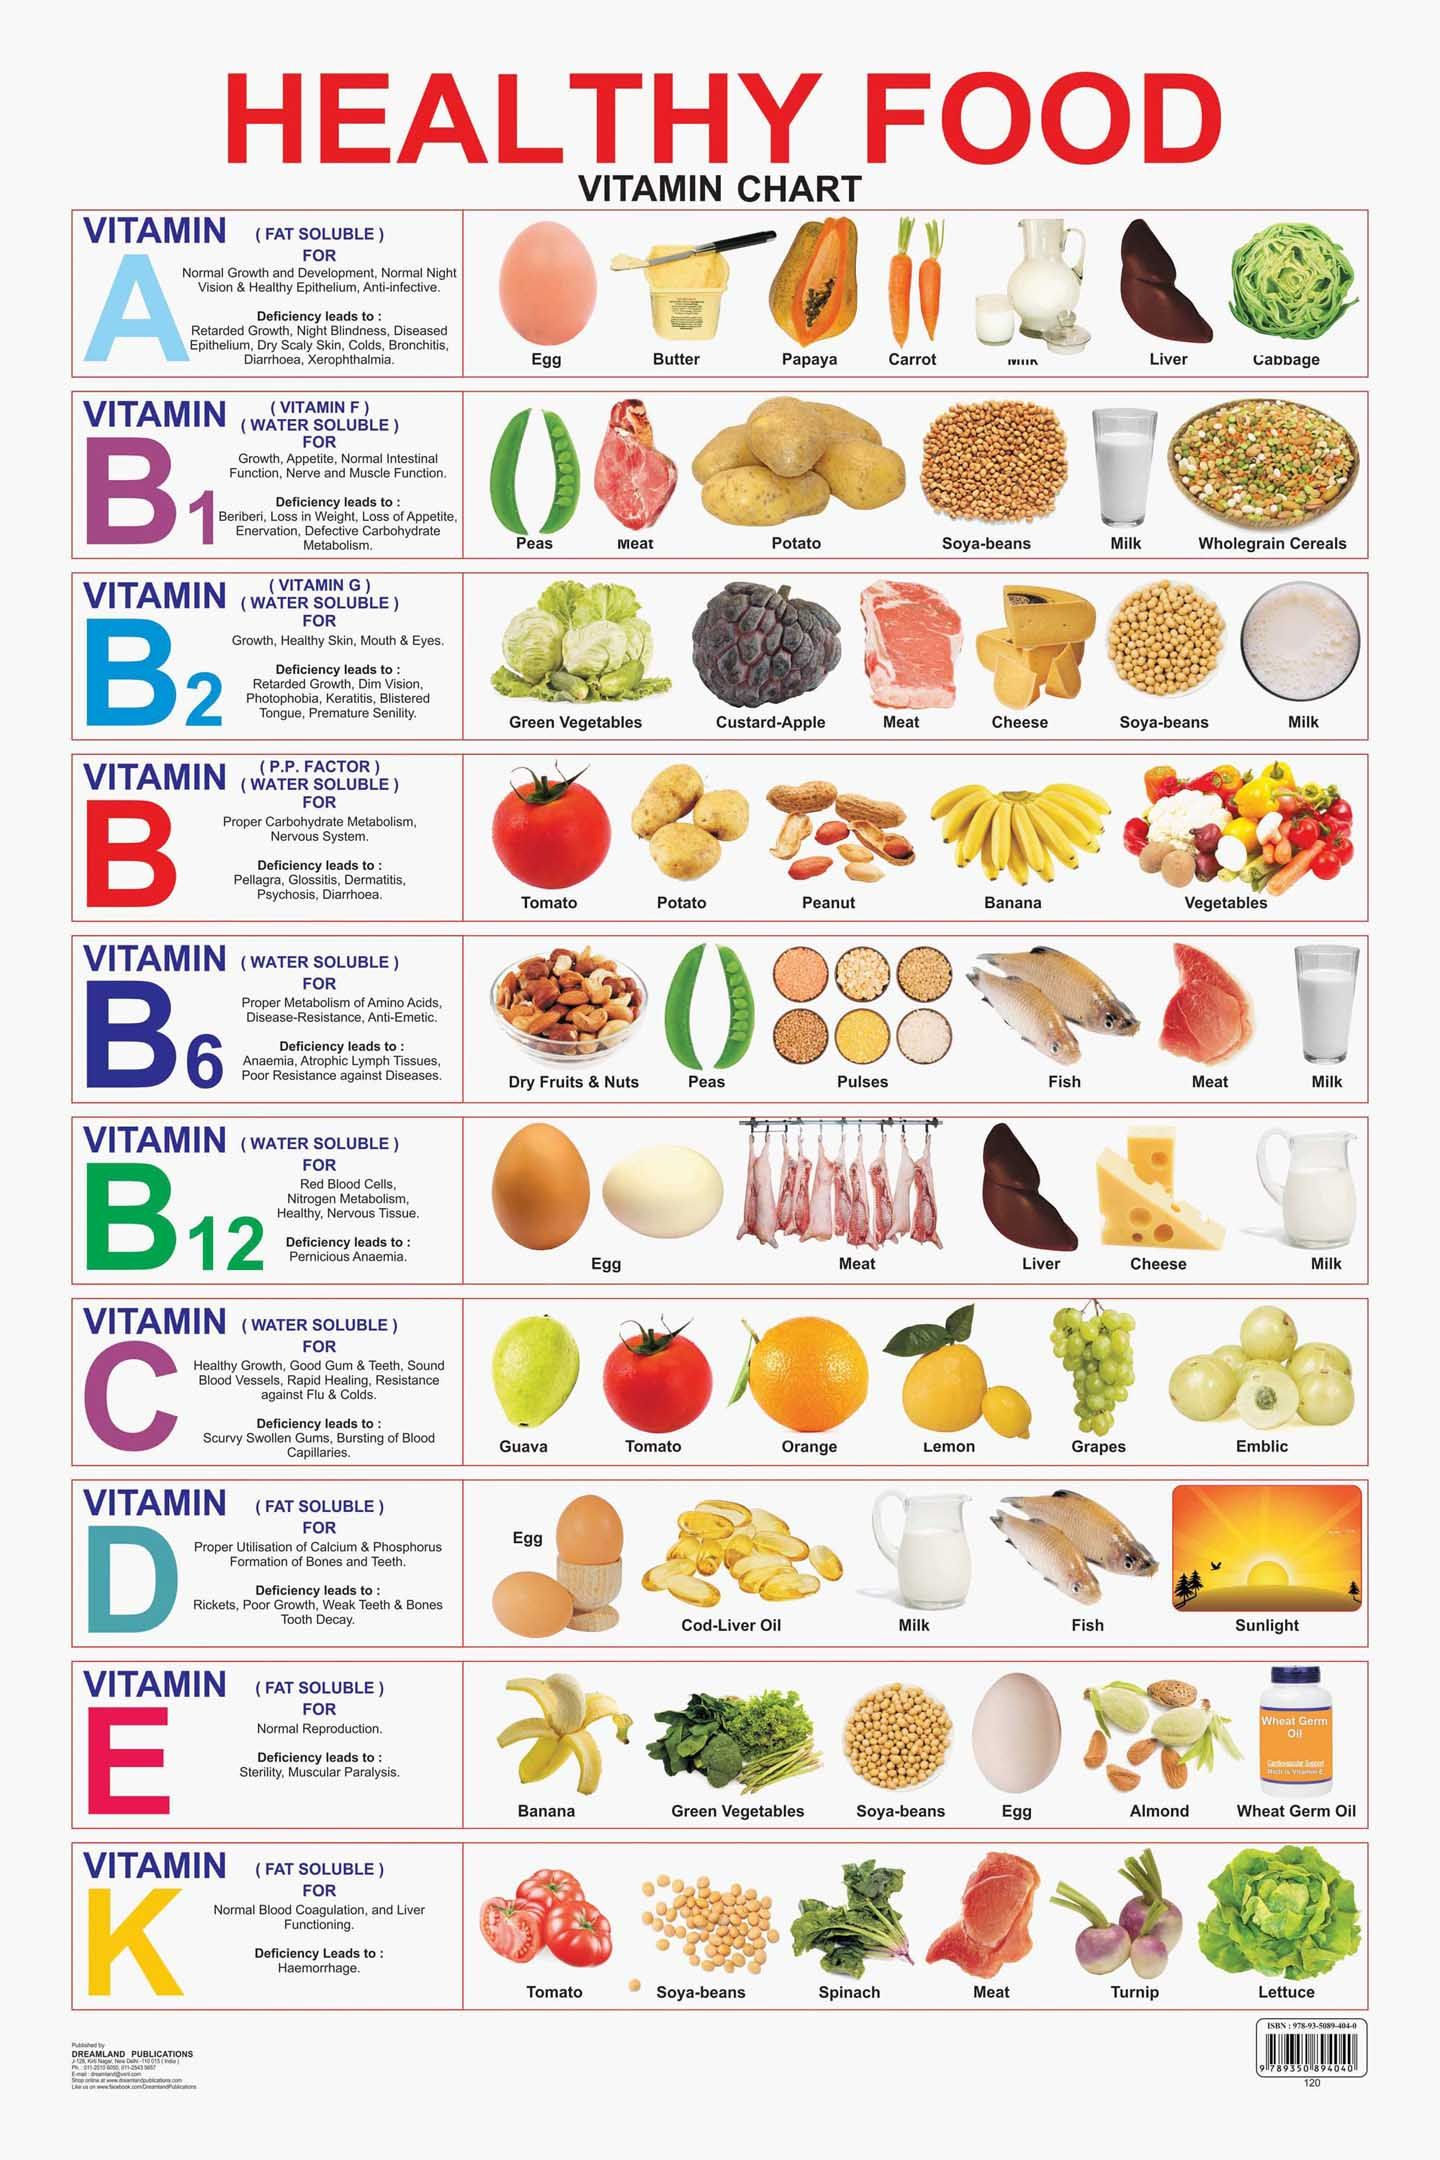 This Chart Gives A Pictorial Representation Of The Foods